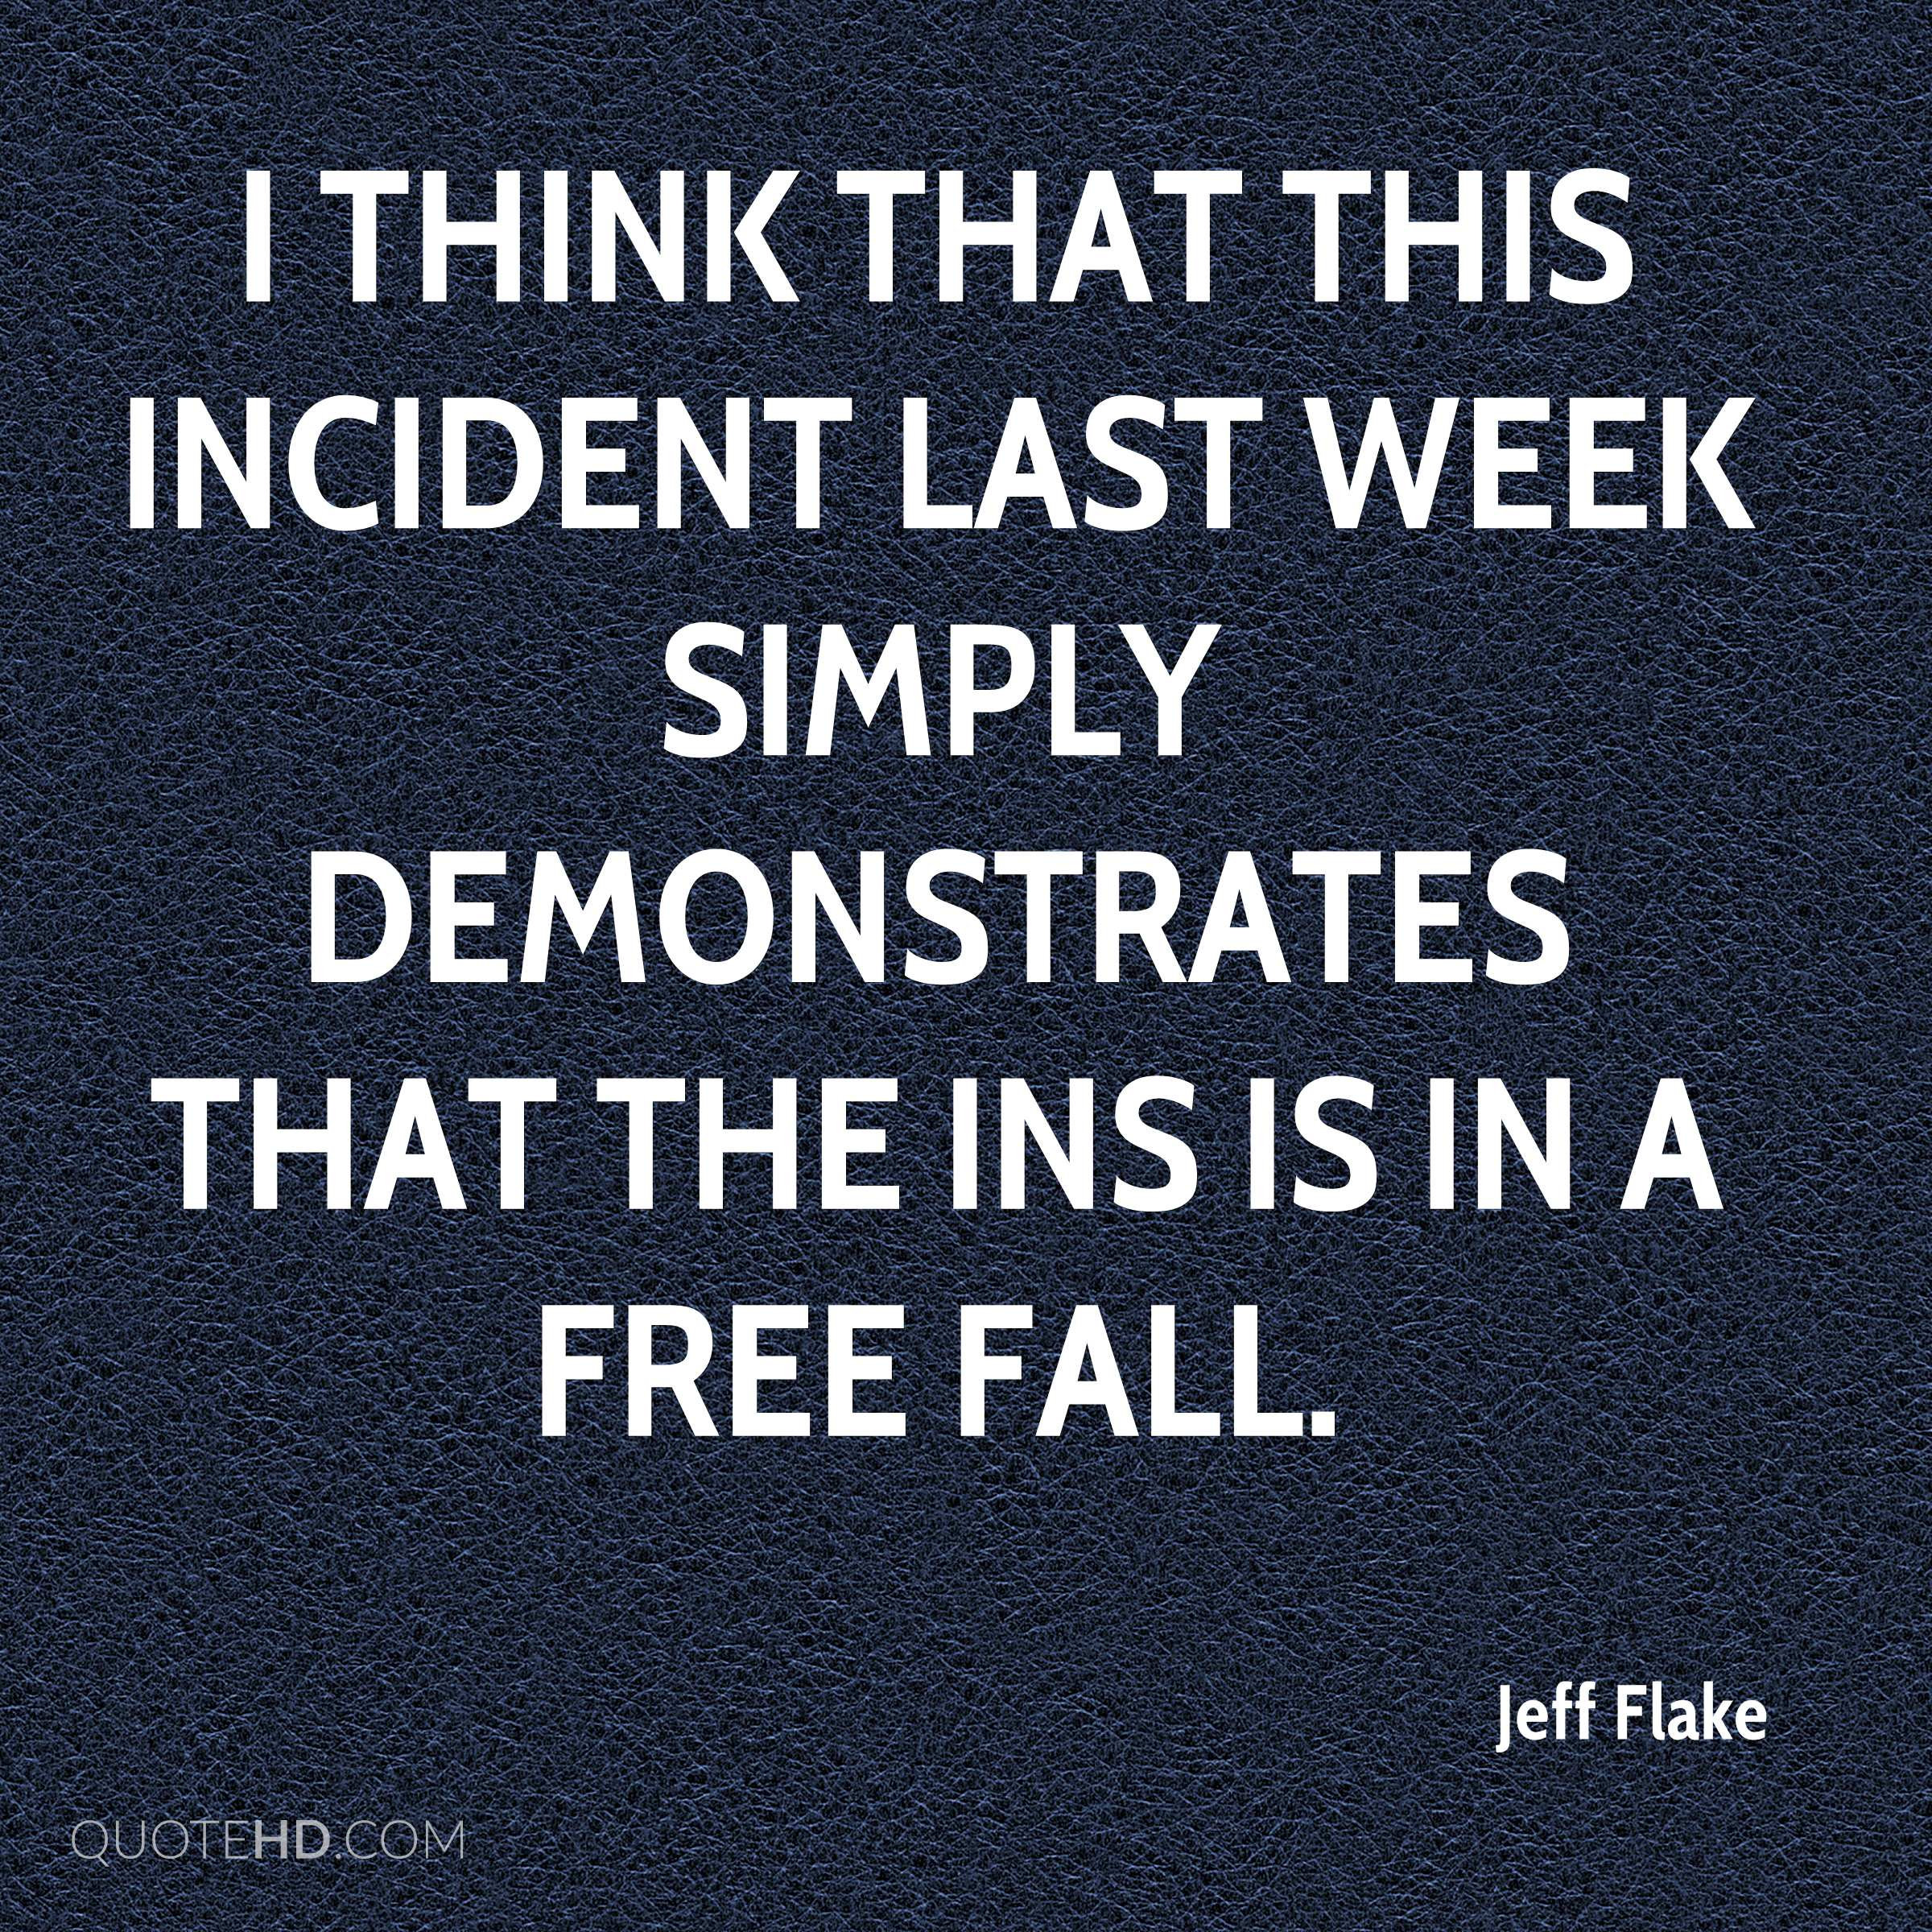 I think that this incident last week simply demonstrates that the INS is in a free fall.